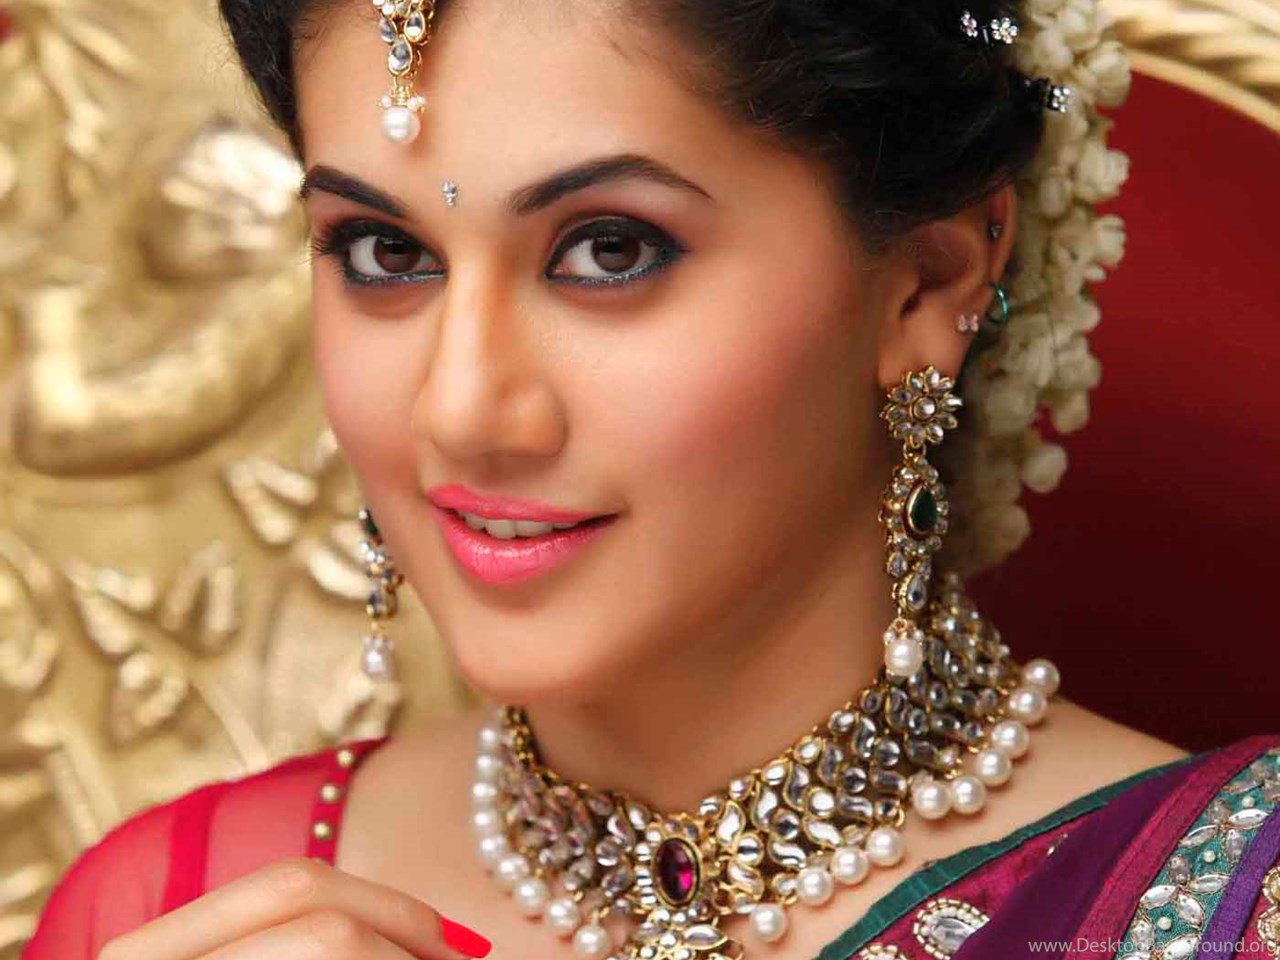 taapsee pannu telugu actress beautiful red saree hd pics desktop